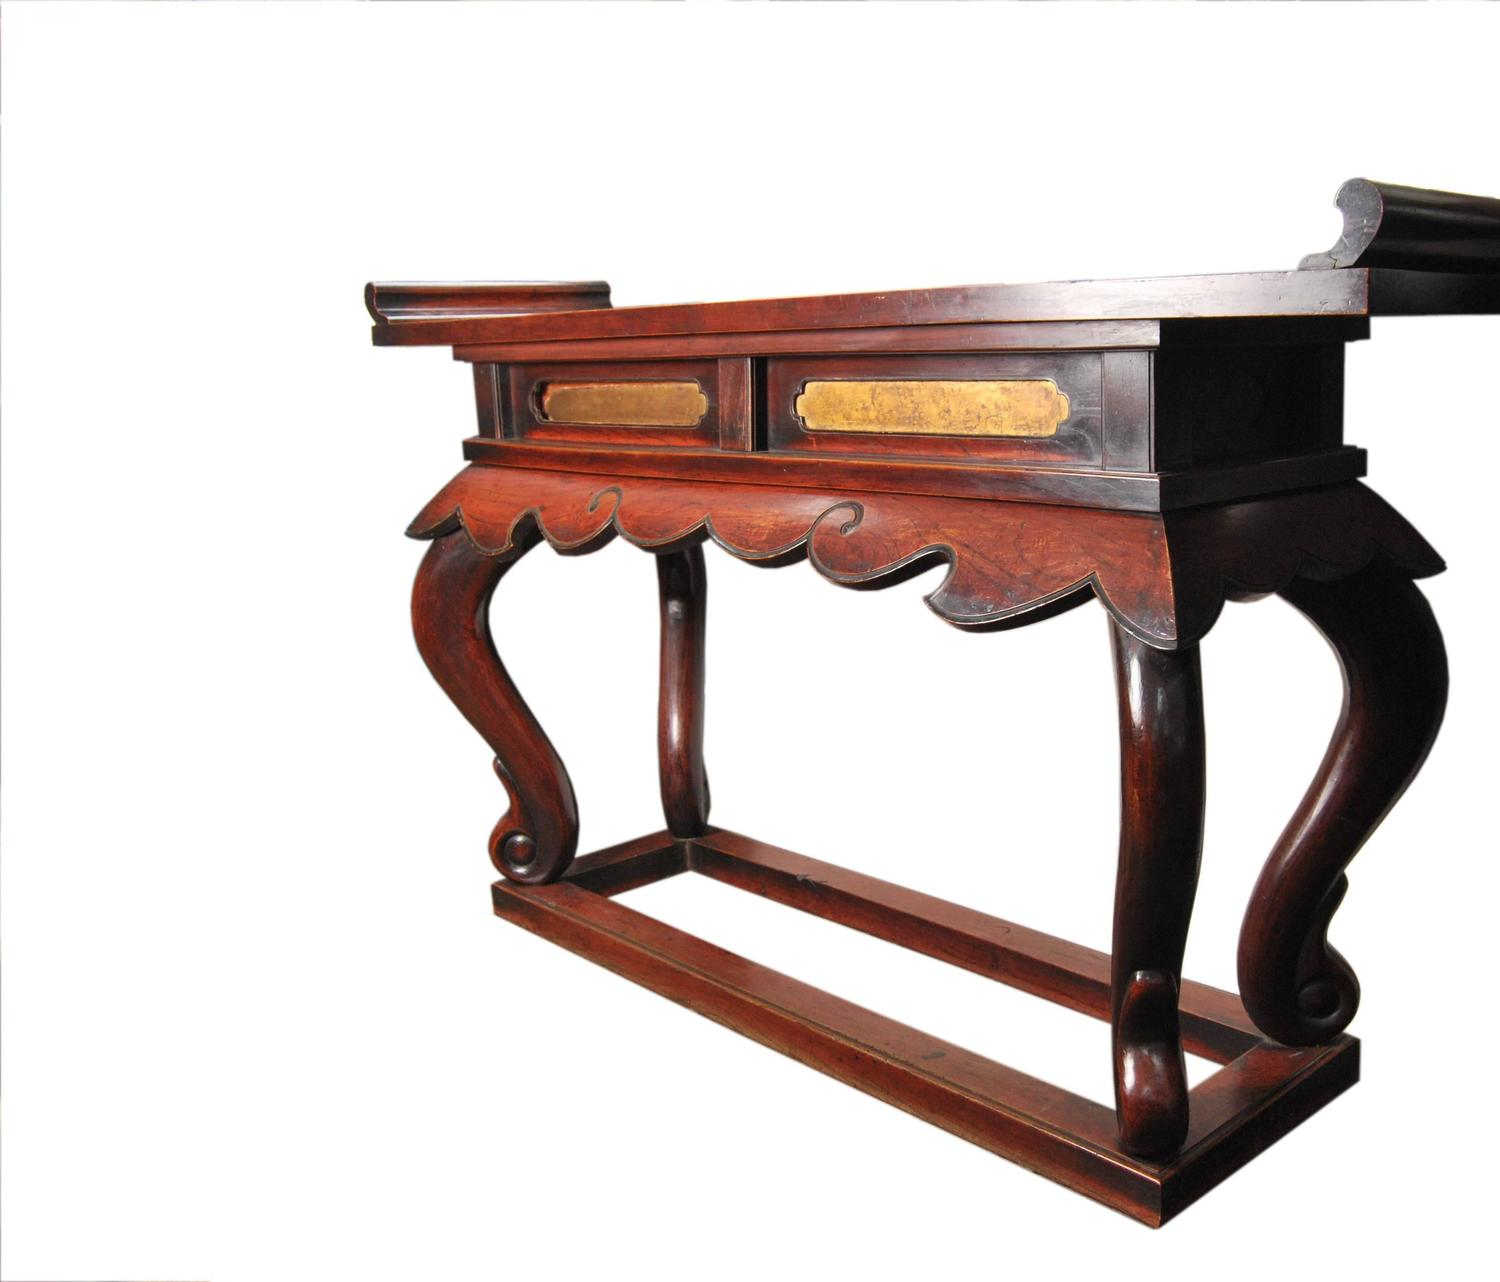 Buddhist Altars For Sale: Antique Japanese Buddhist Altar Table, 19th Century For